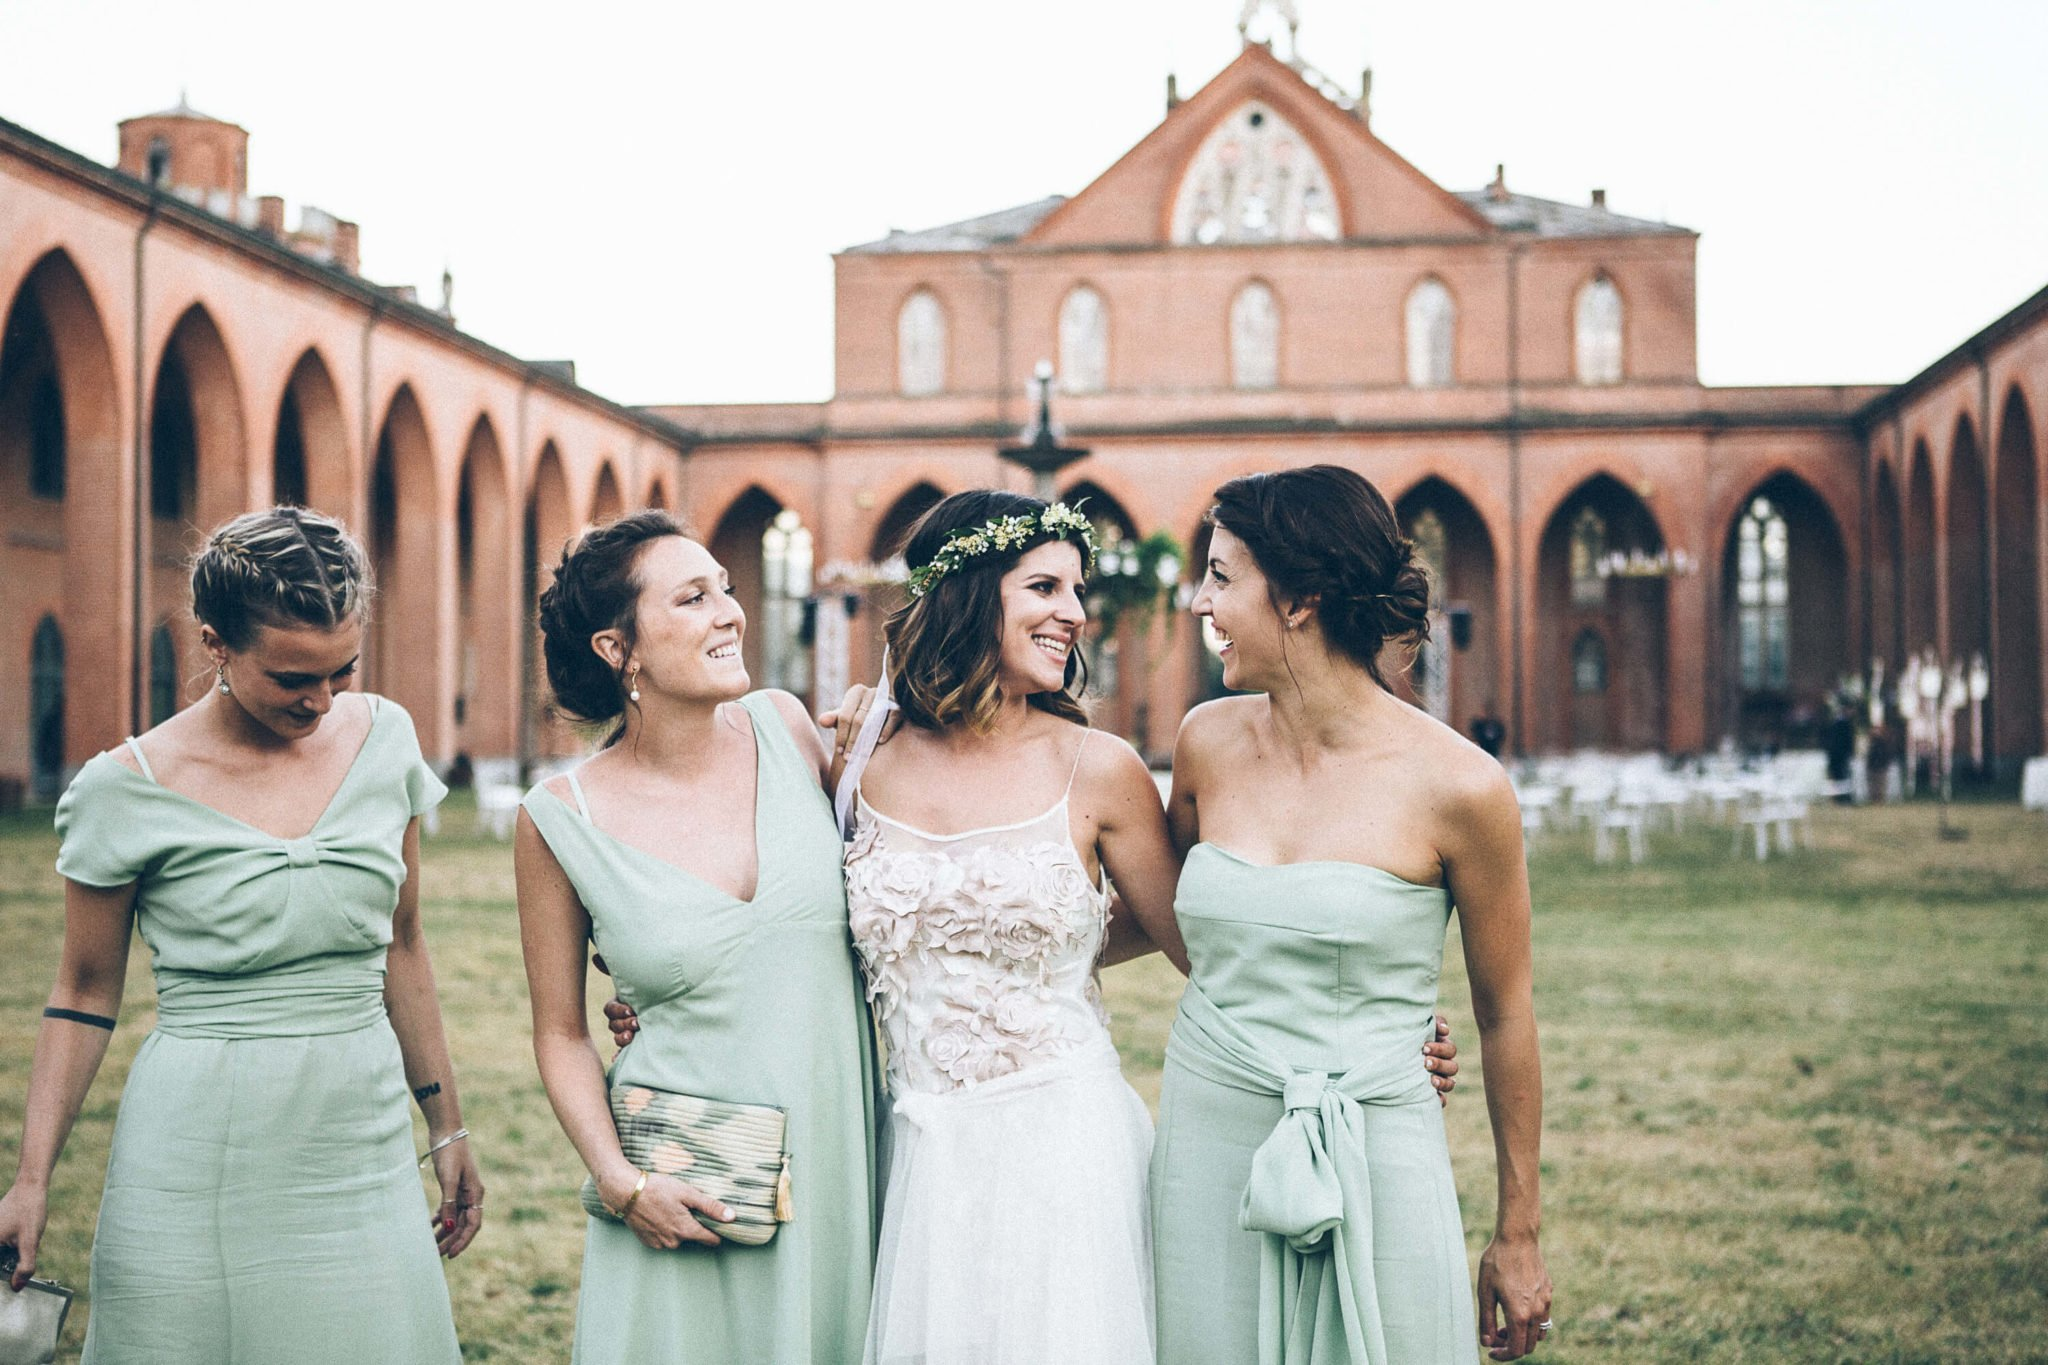 004-wedding-in_serre_di_racconigi_photographer